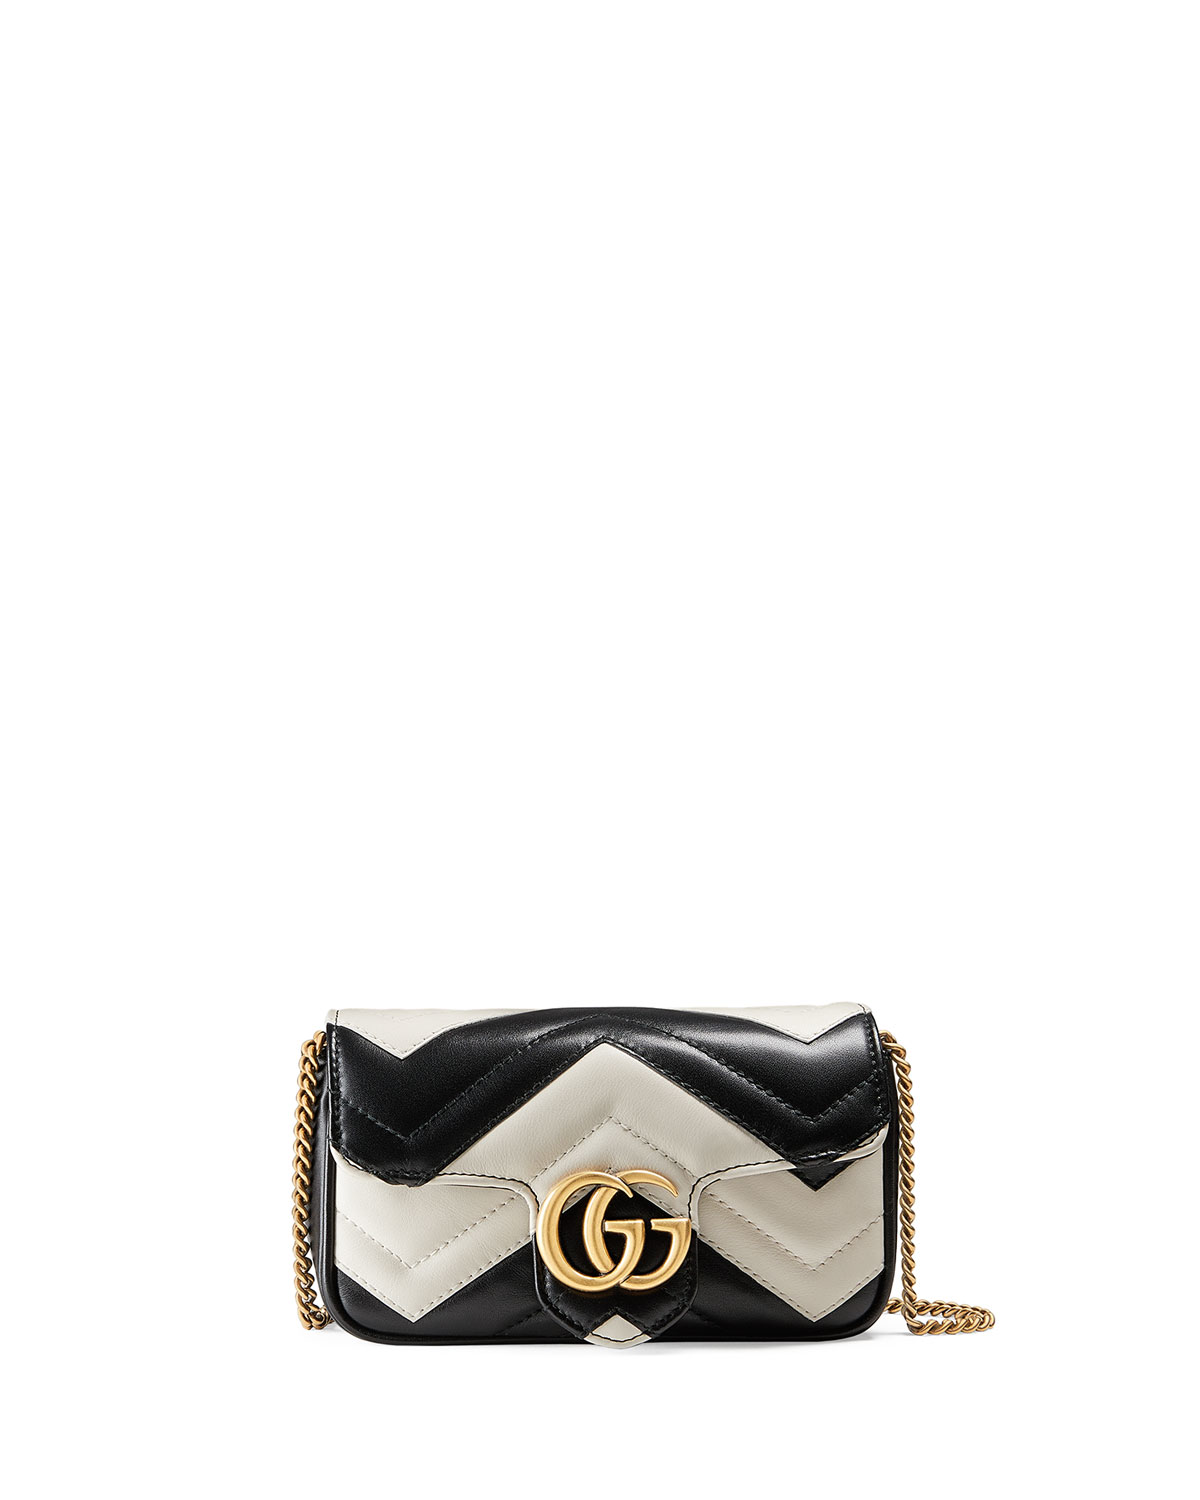 18d67f9ae0bc Gucci GG Marmont Matelassé Leather Super Mini Bag, Black/White ...